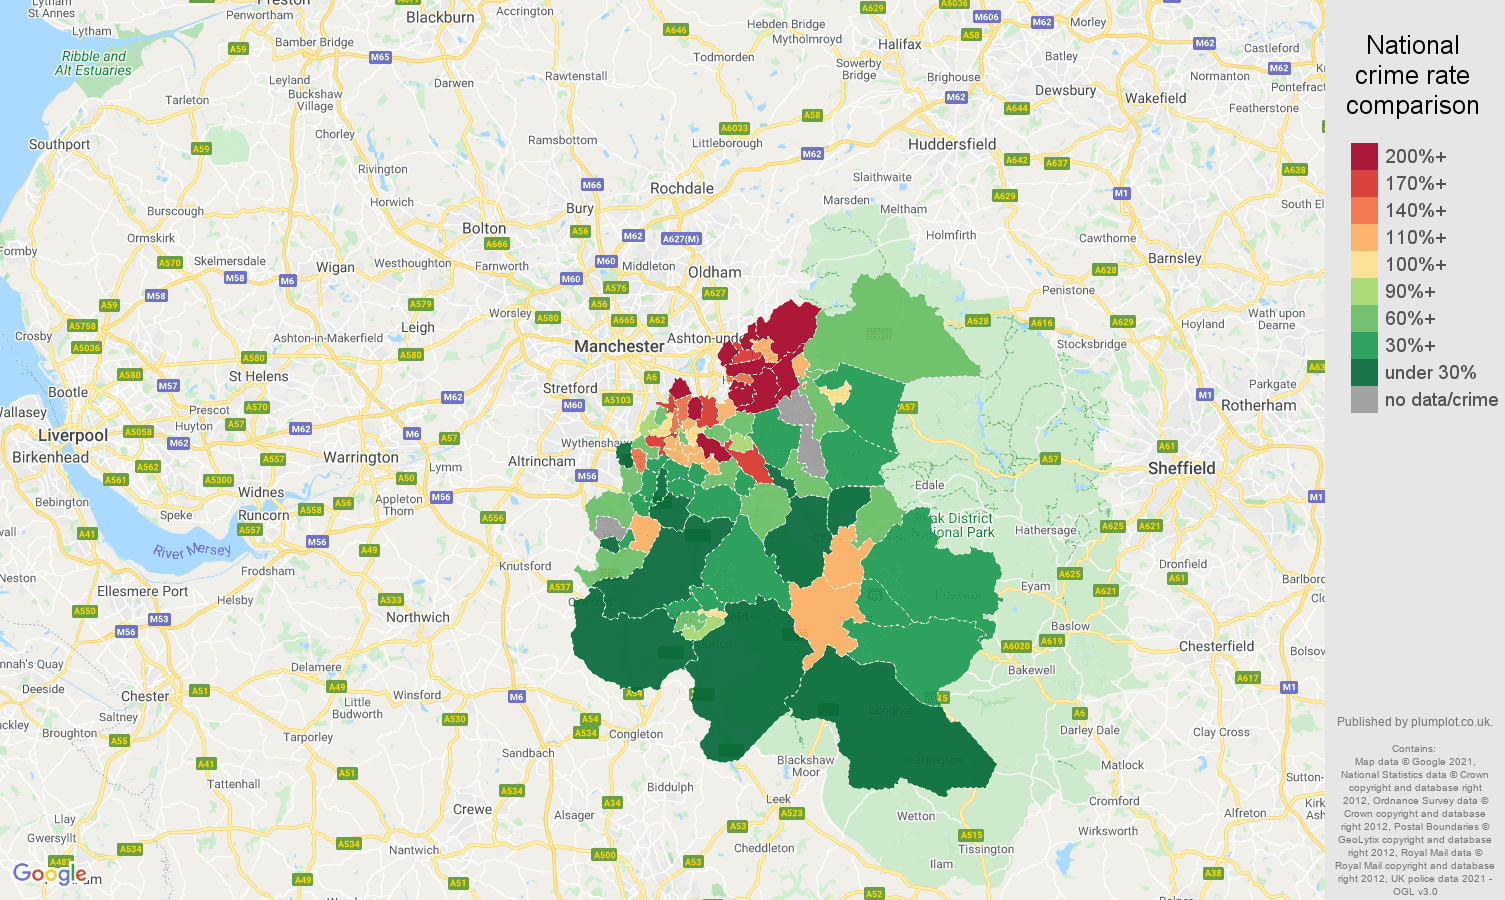 Stockport other crime rate comparison map